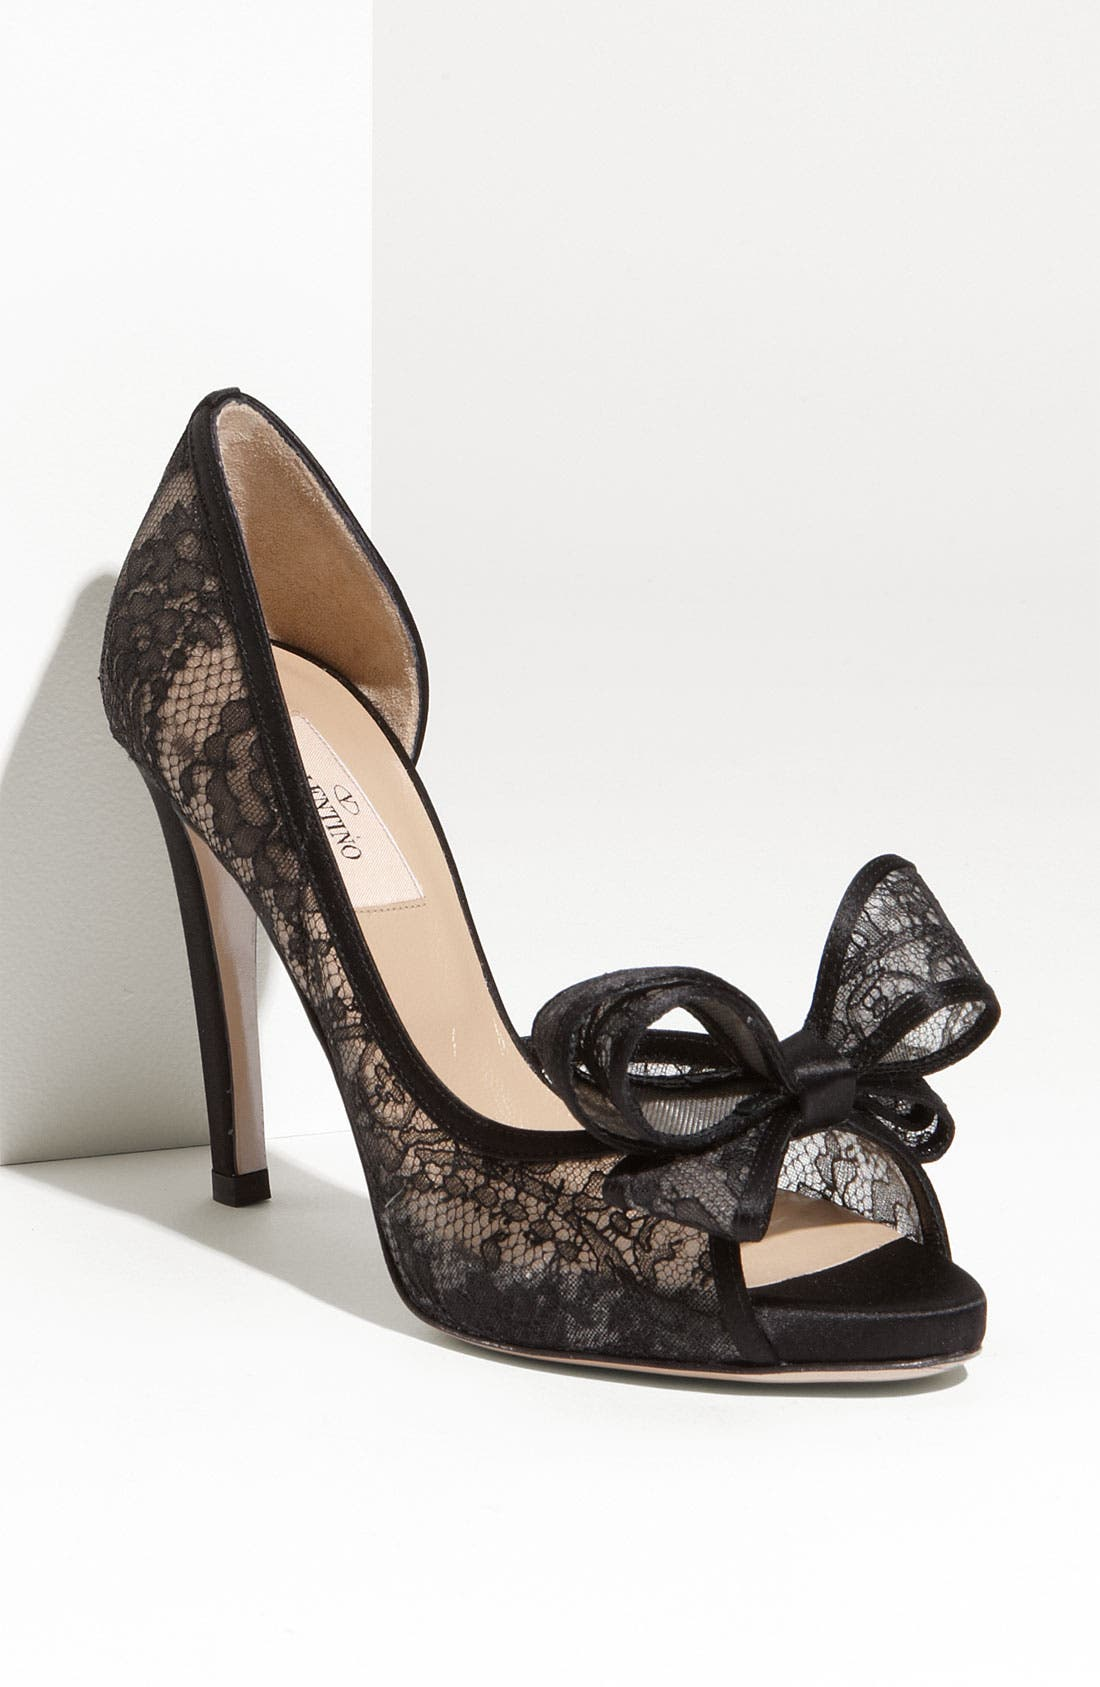 Alternate Image 1 Selected - VALENTINO GARAVANI Lace Couture Bow d'Orsay Pump